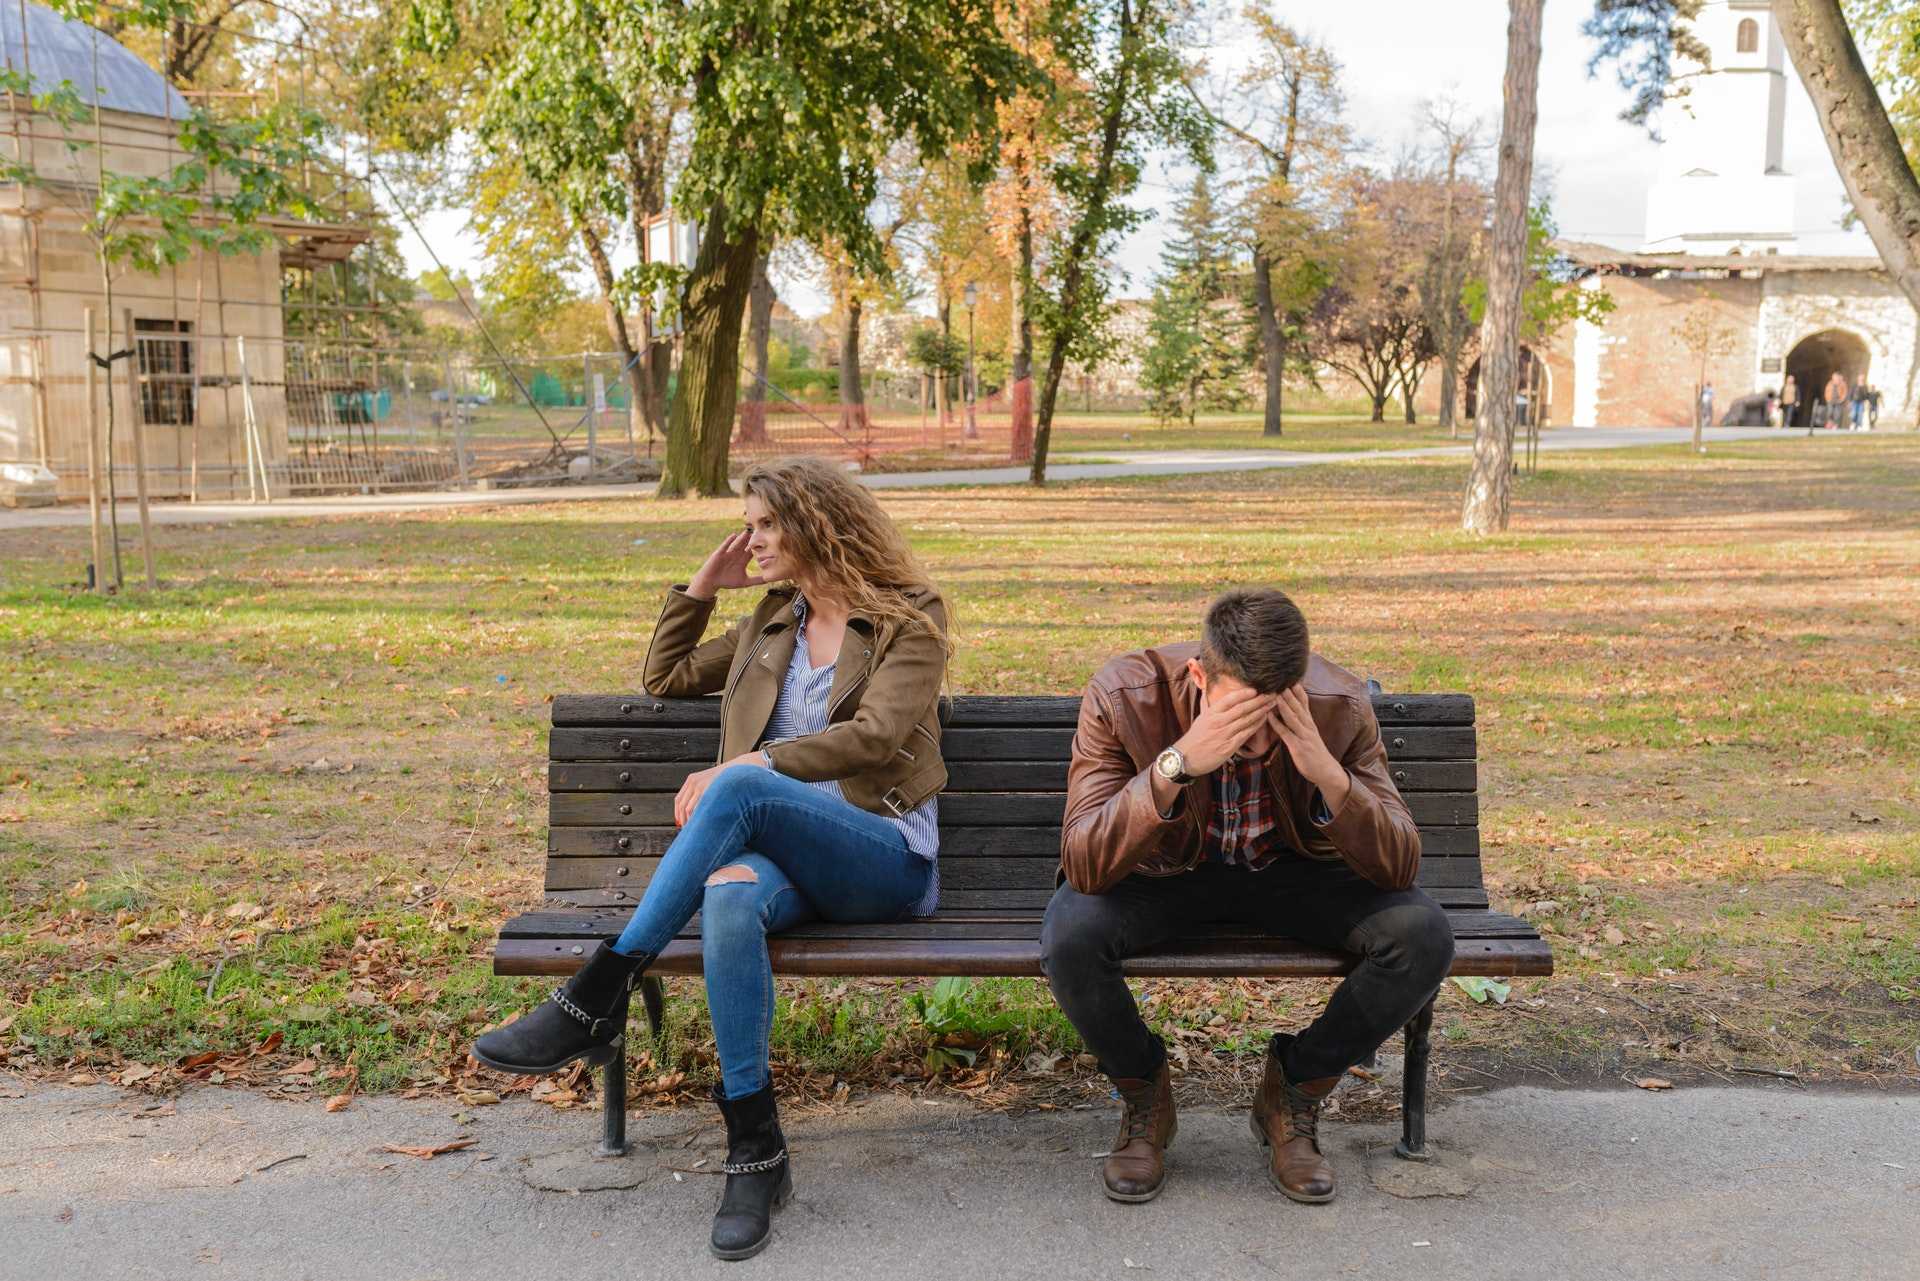 picture of distressed couple on park bench